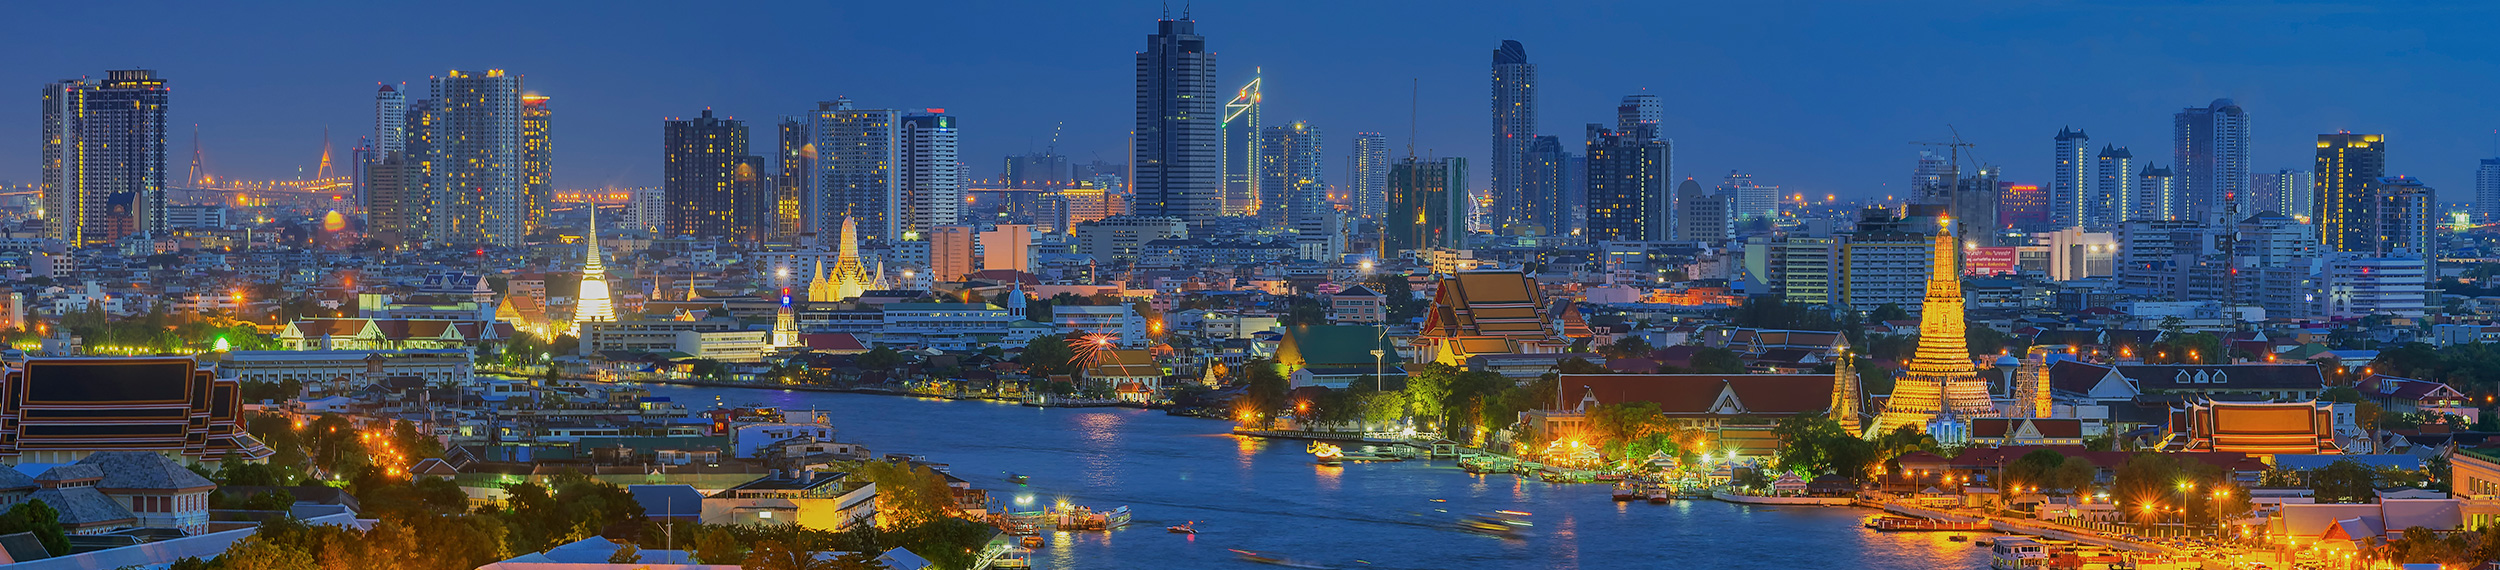 The Chao Phraya River Wat Arun curves around high-rise buildings at dusk in Bangkok, Thailand..